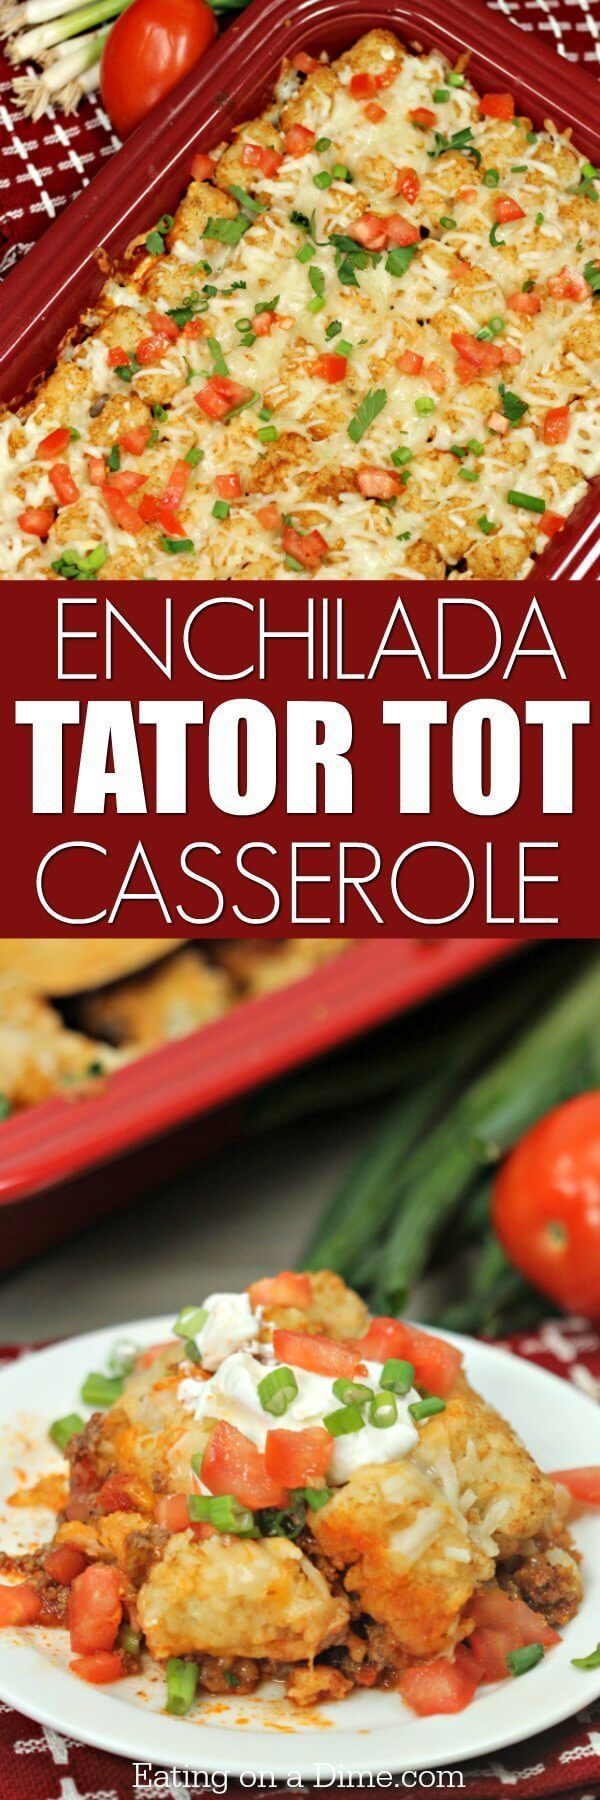 If you love tator tot casseroles, you will love this easy beef enchilada tator tot casserole recipe. All the flavors of beef enchiladas in a casserole. #tatortotcasserole #enchiladacasserole #easydinner #eatingonadime